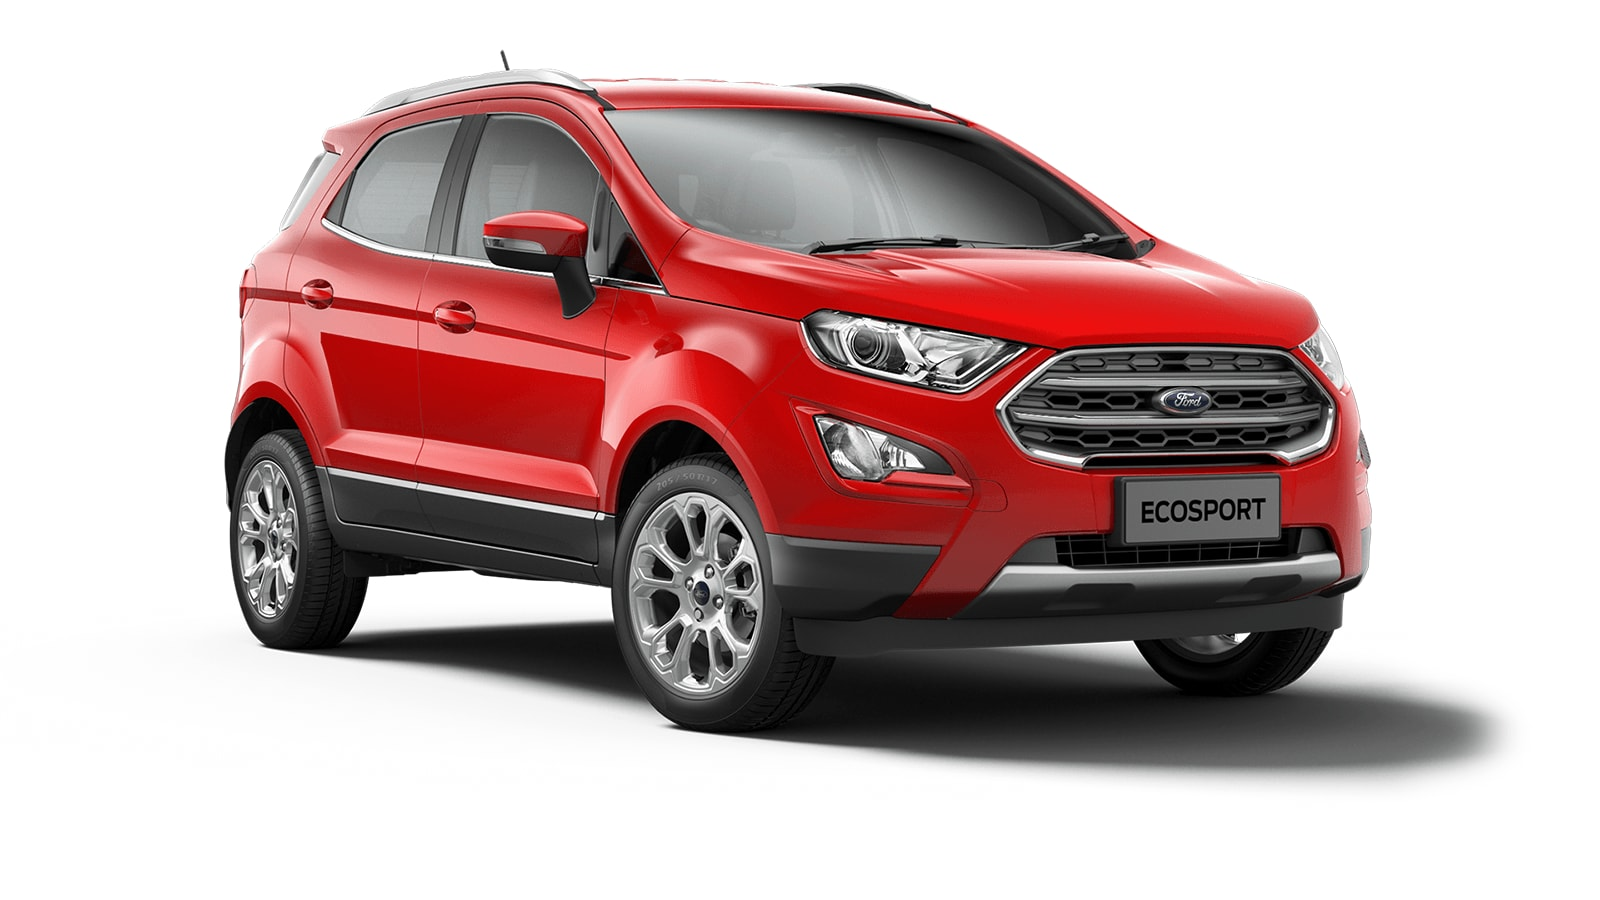 Ford EcoSport at Lamberts Garage